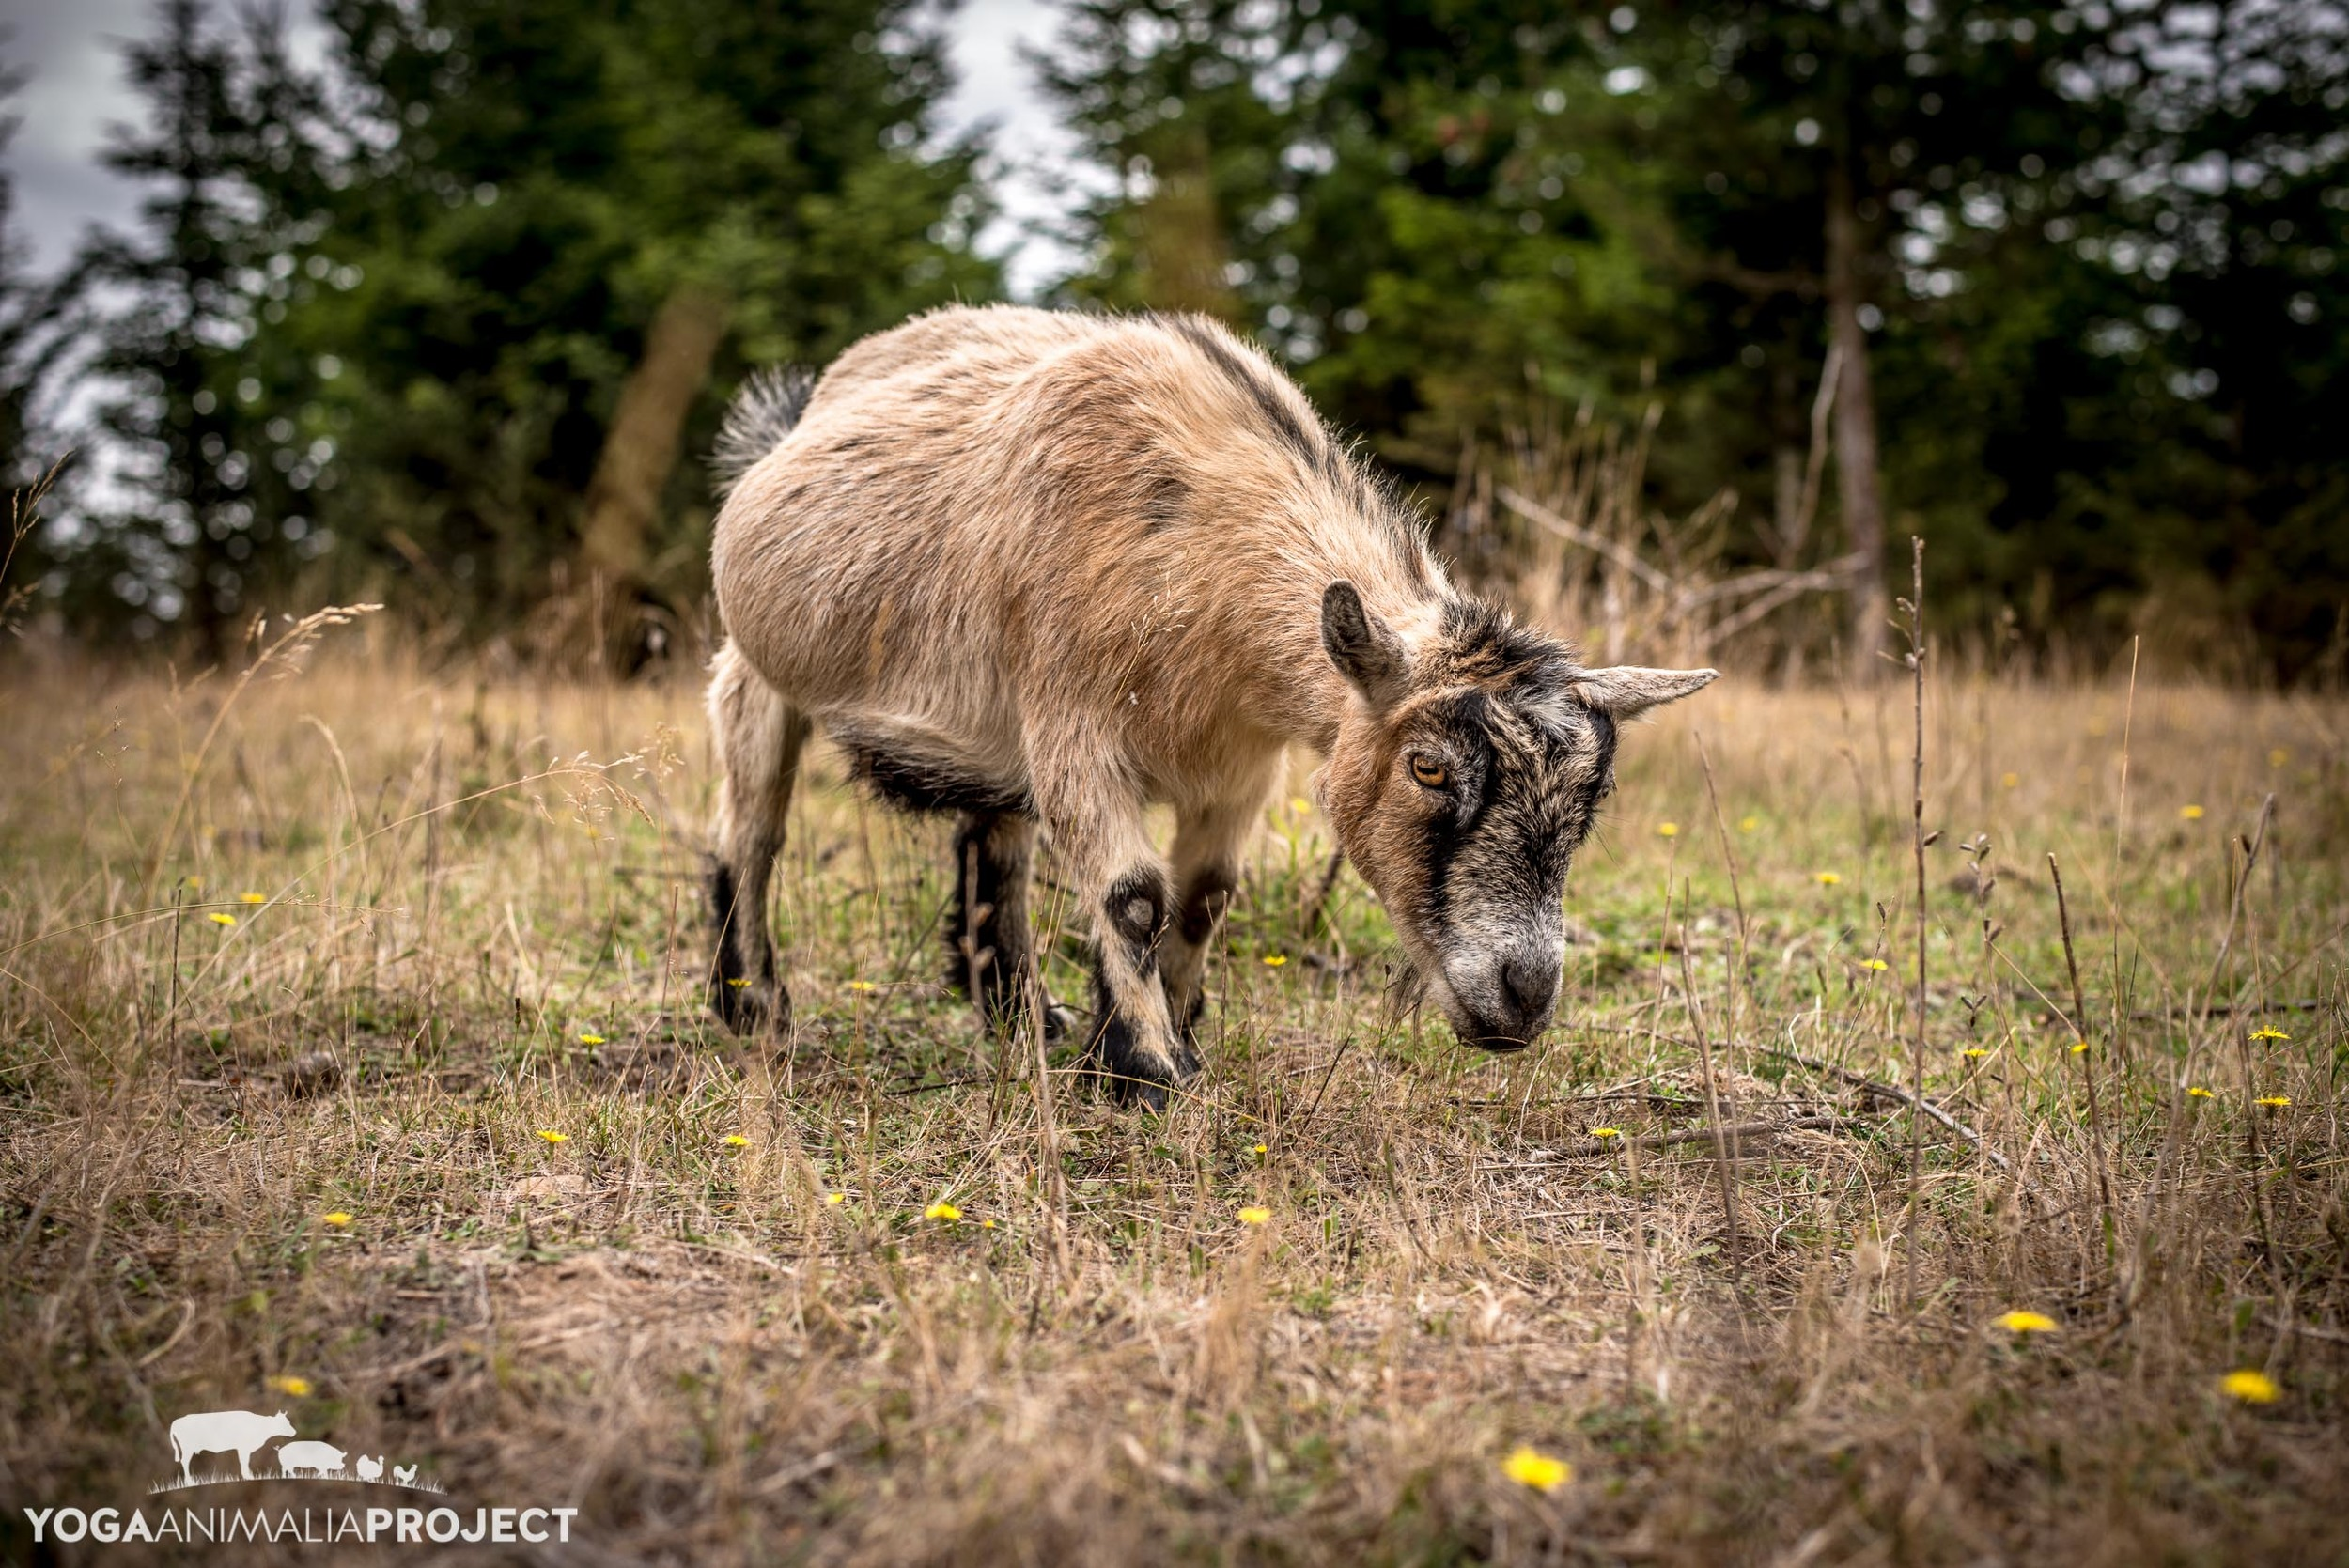 Fauna - the grass was greener until the goats got it, Green Acres Farm Sanctuary, Silverton, Oregon